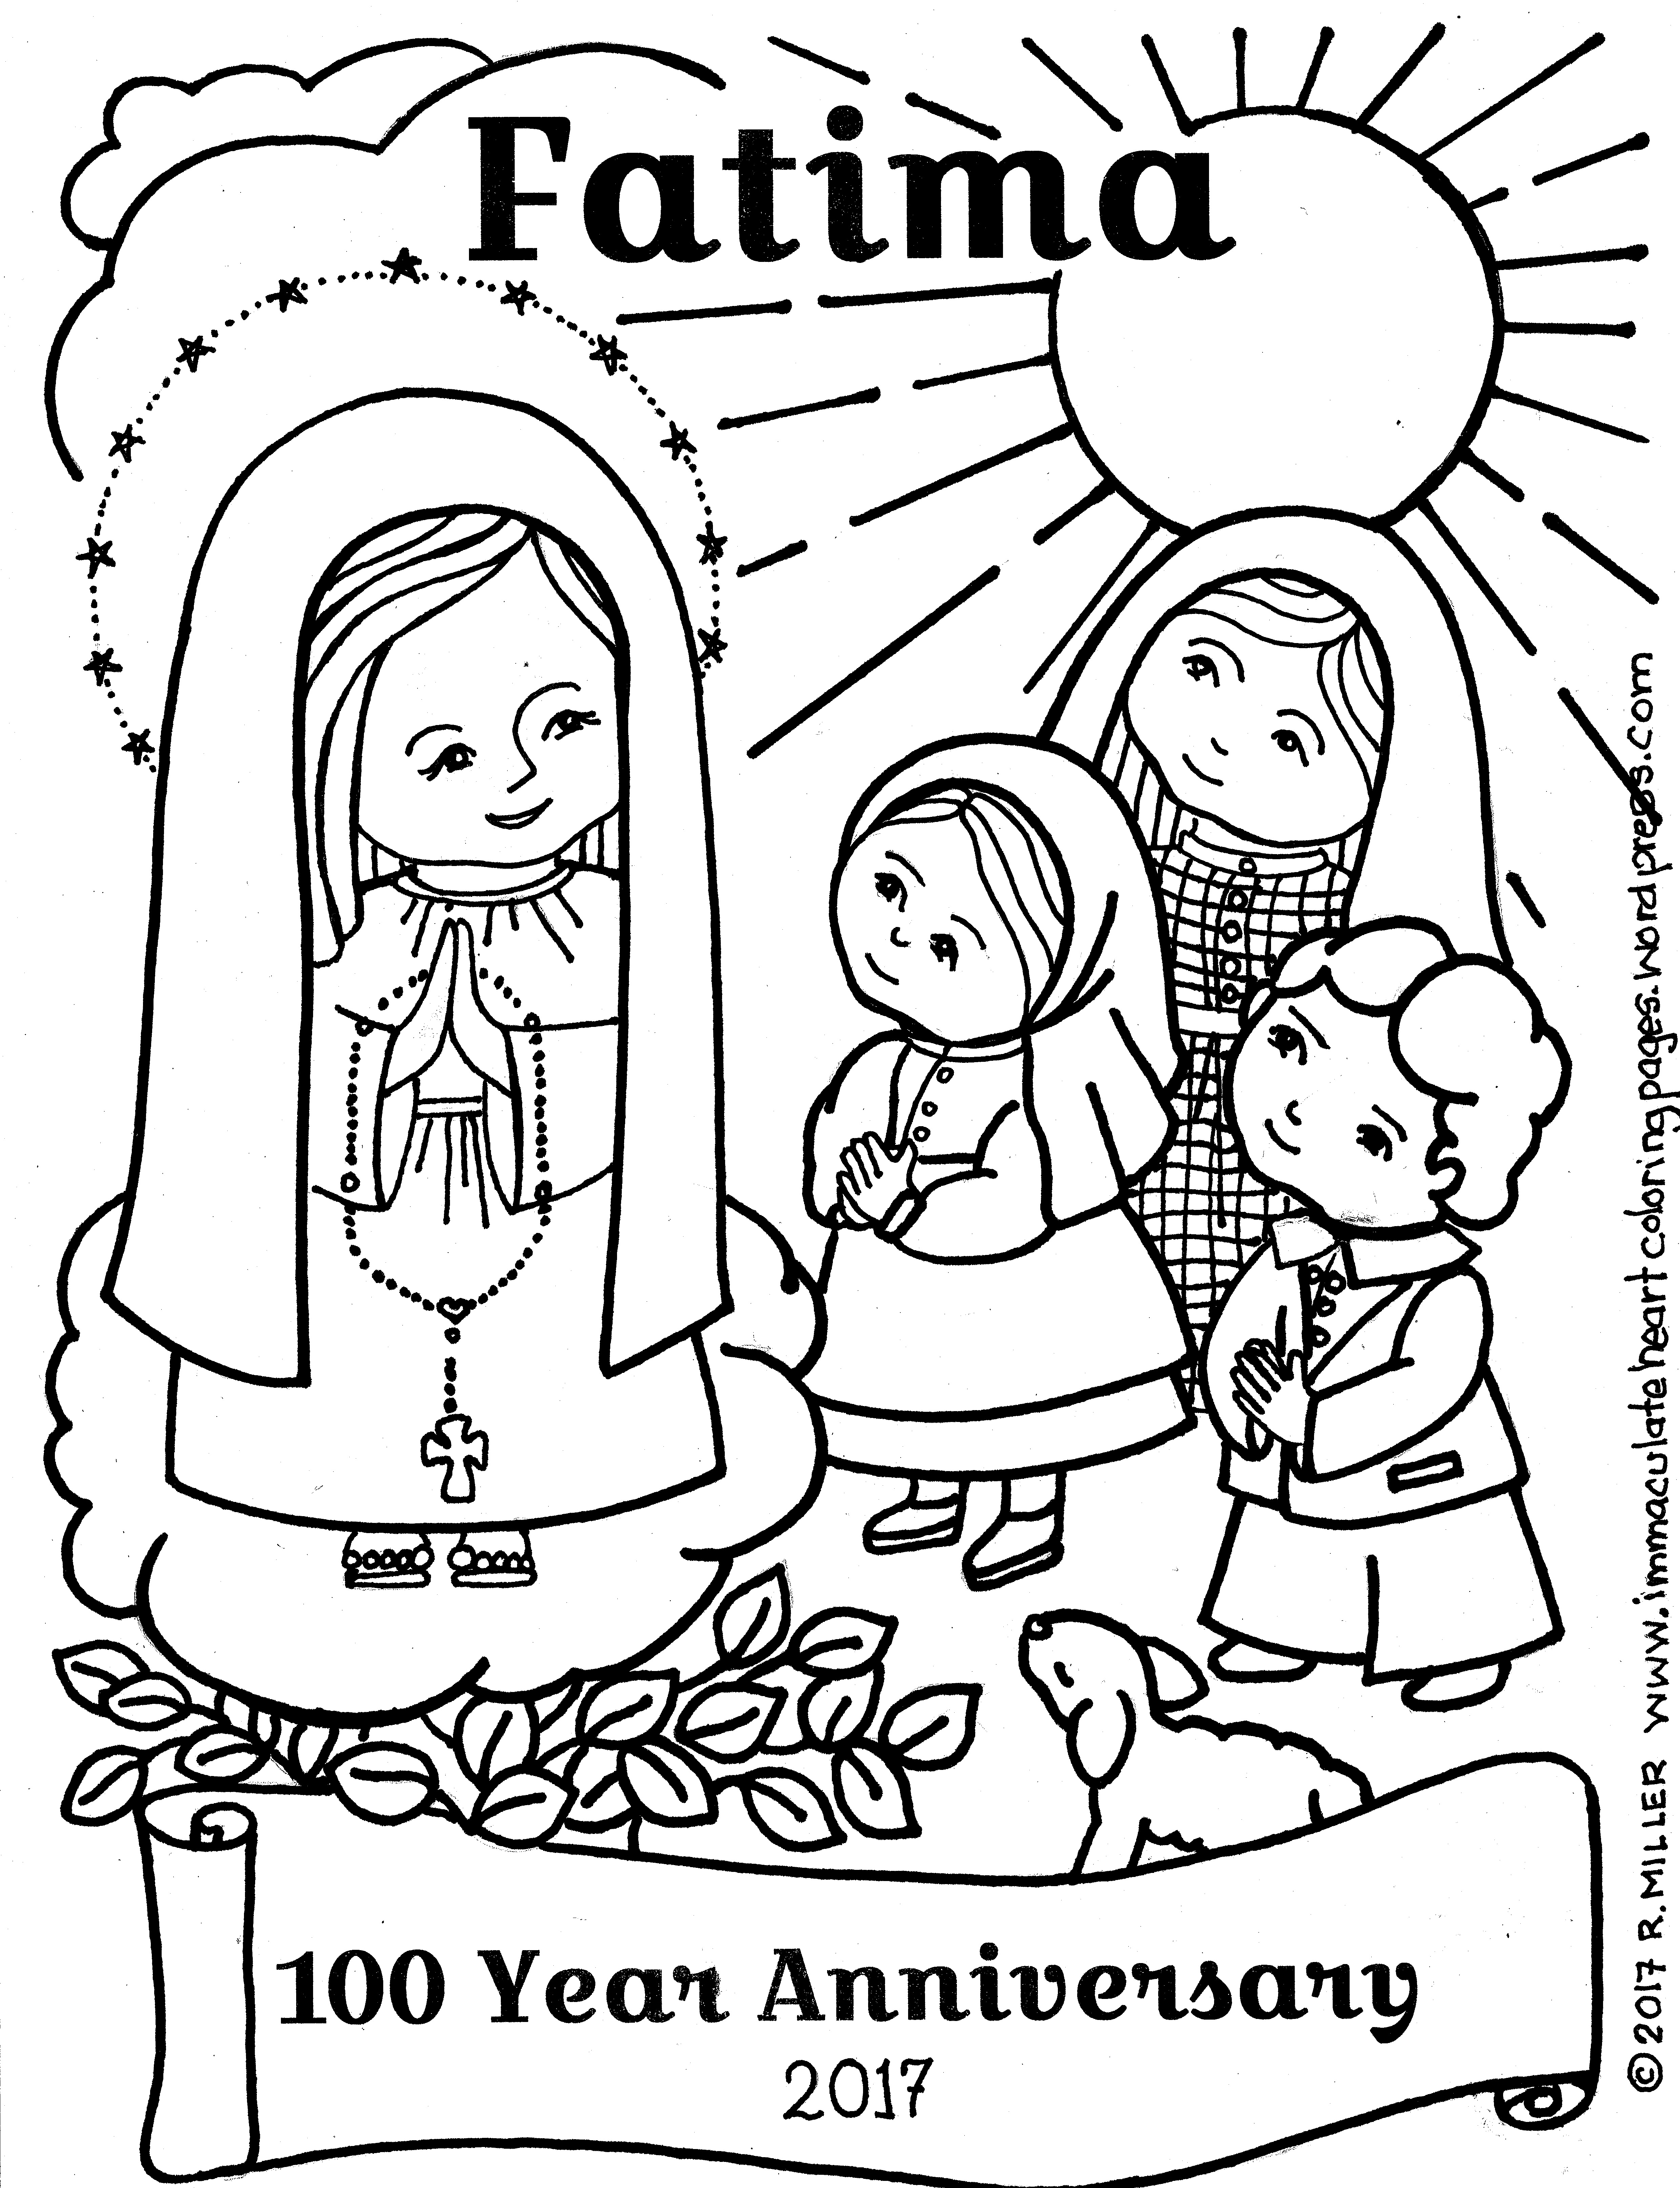 Fatima 100 Year Anniversary Coloring Page Immaculate